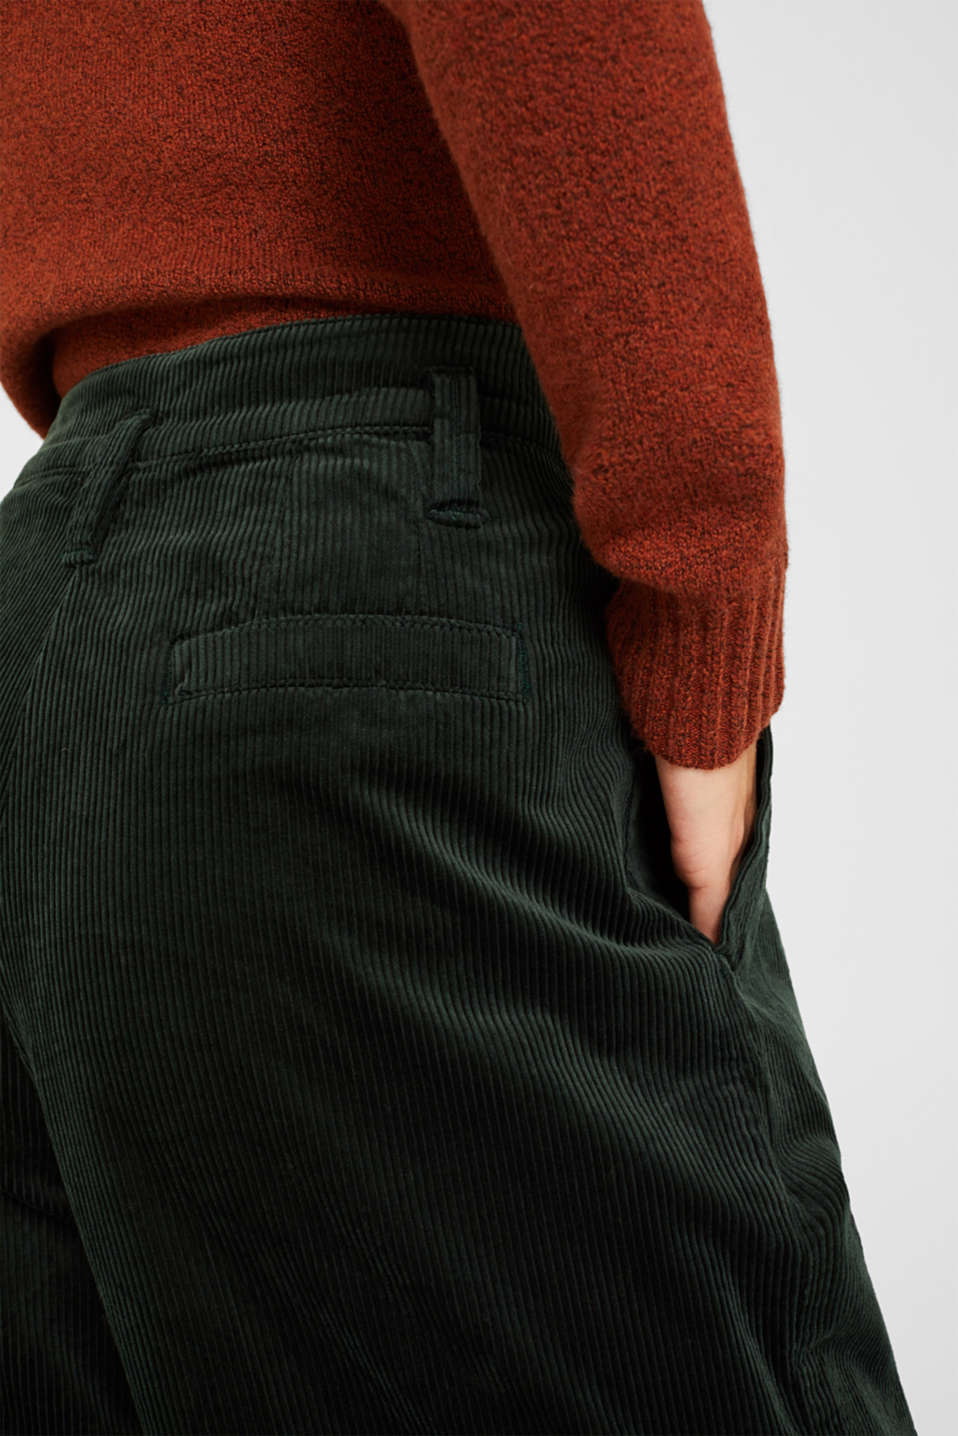 Pants woven, DARK TEAL GREEN, detail image number 5